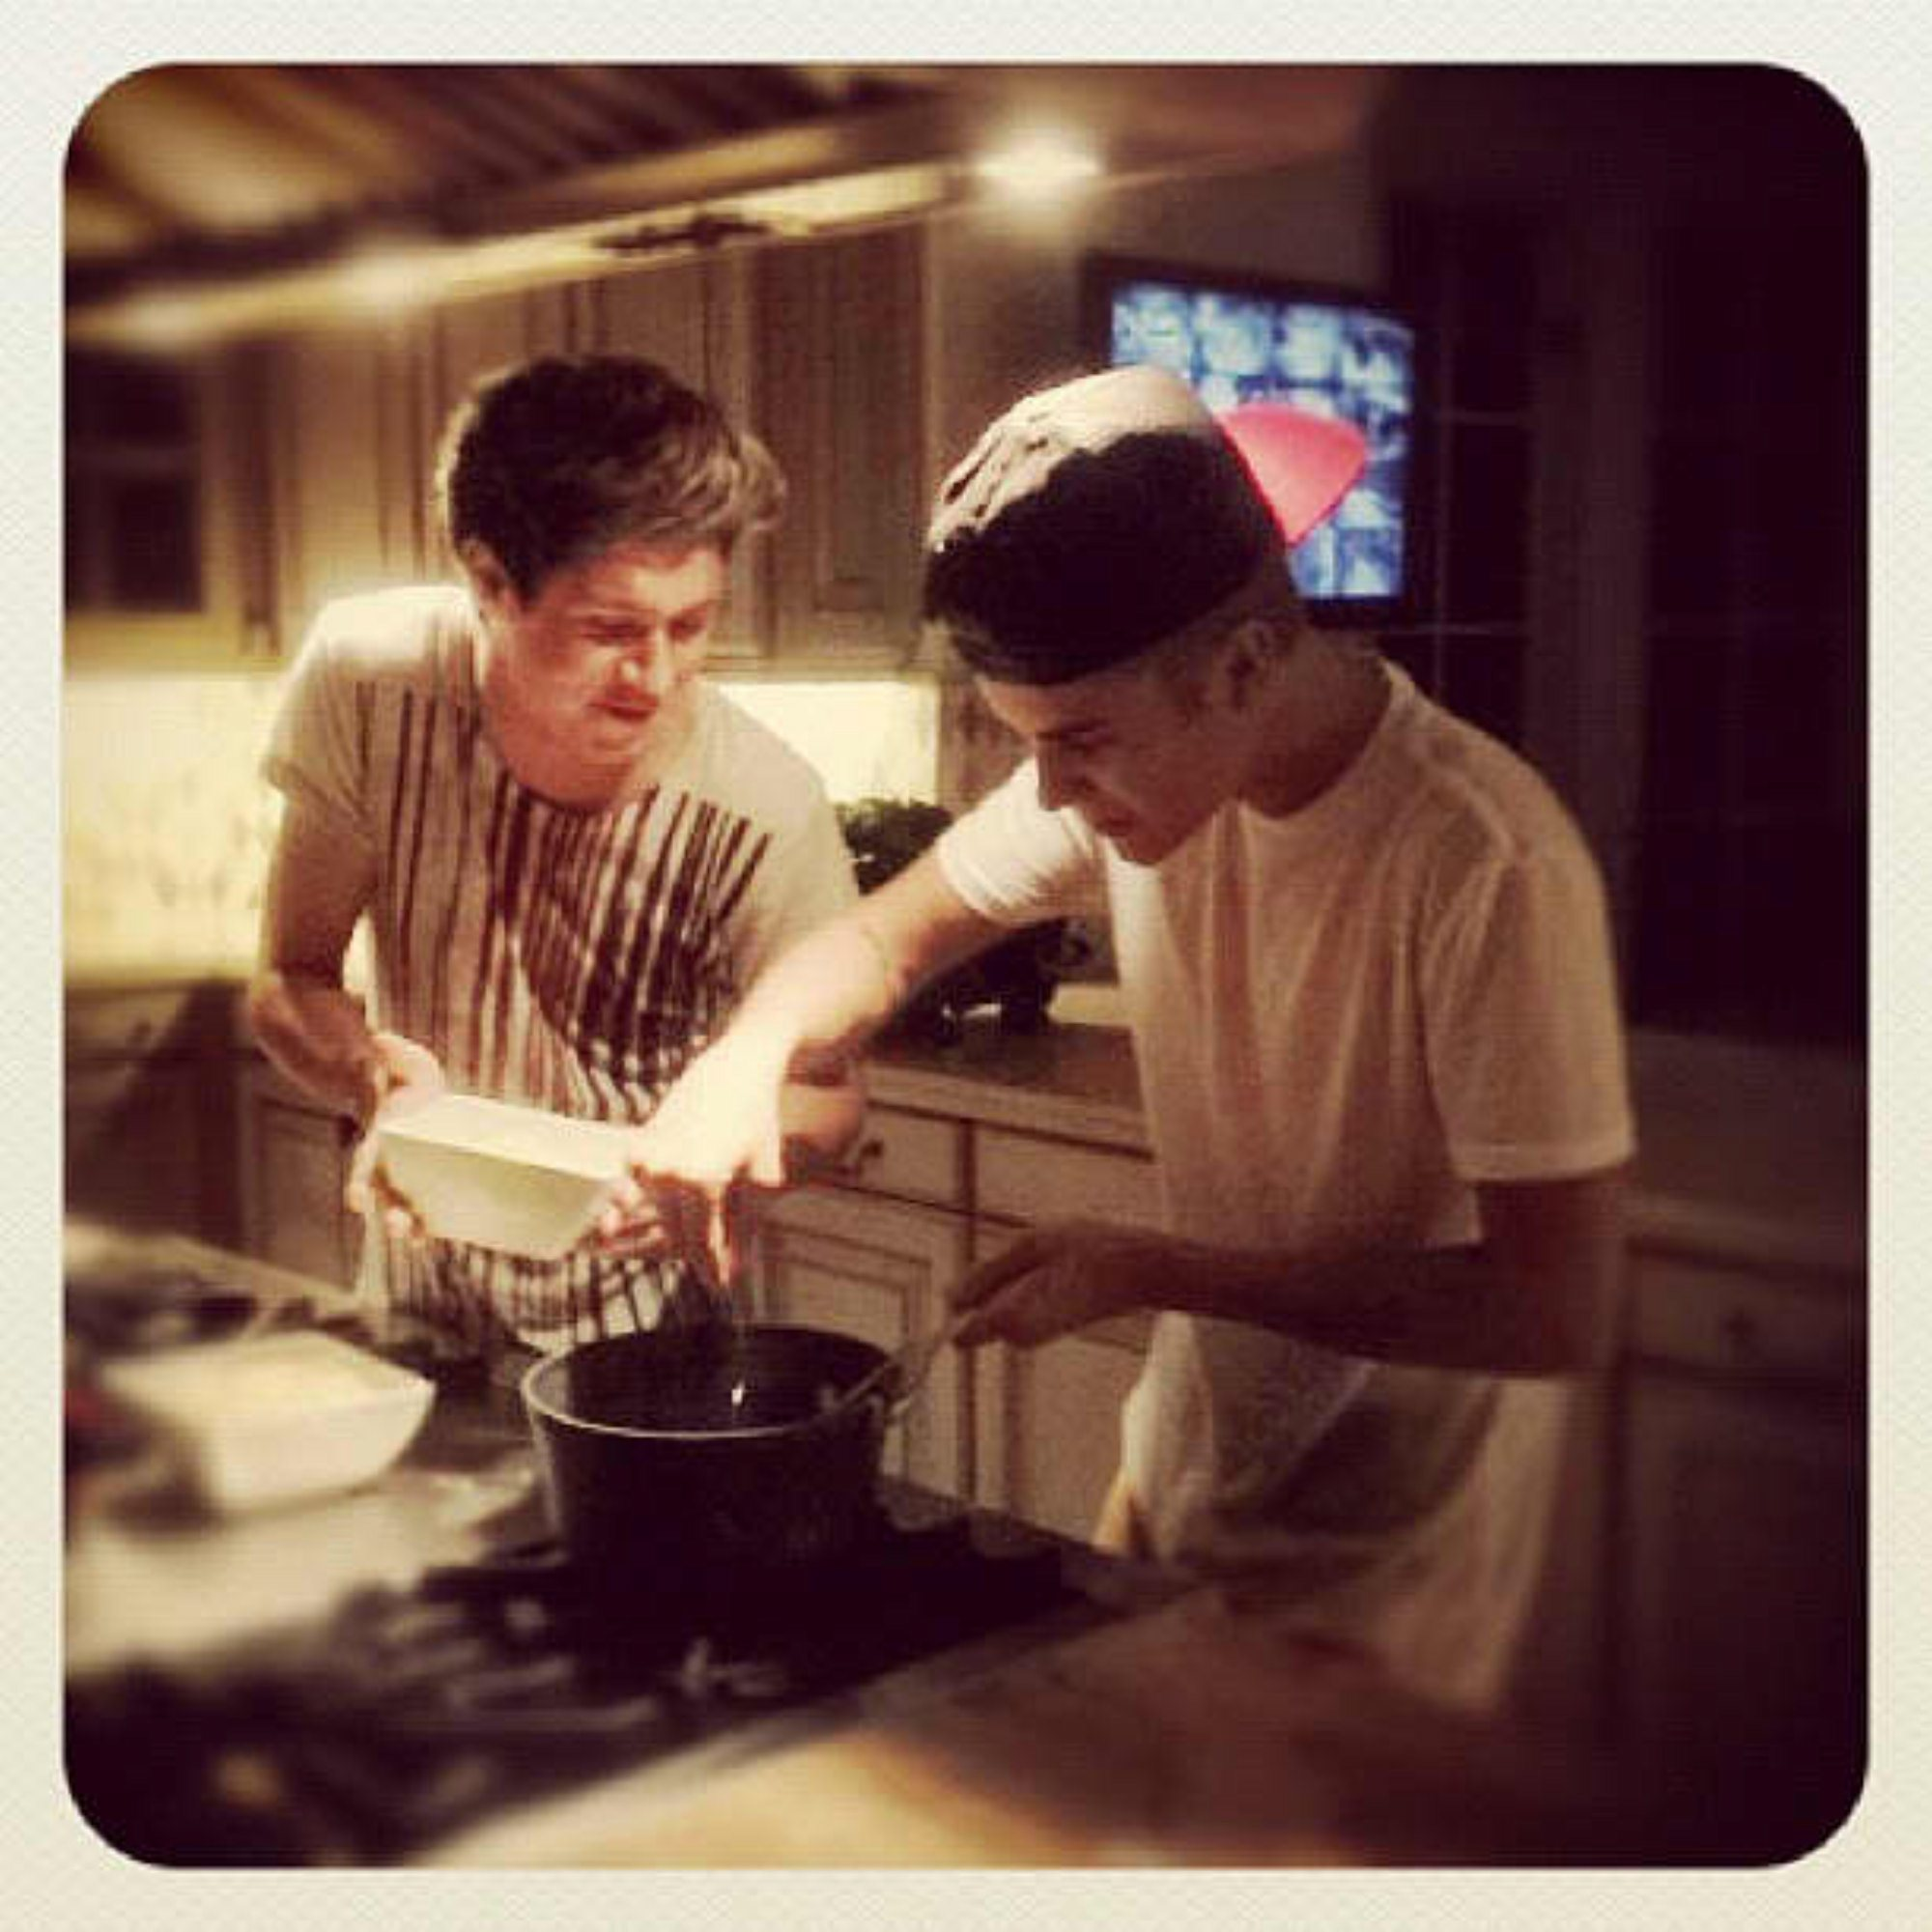 justin bieber - instagram , 2012 - Justin Bieber Photo ...